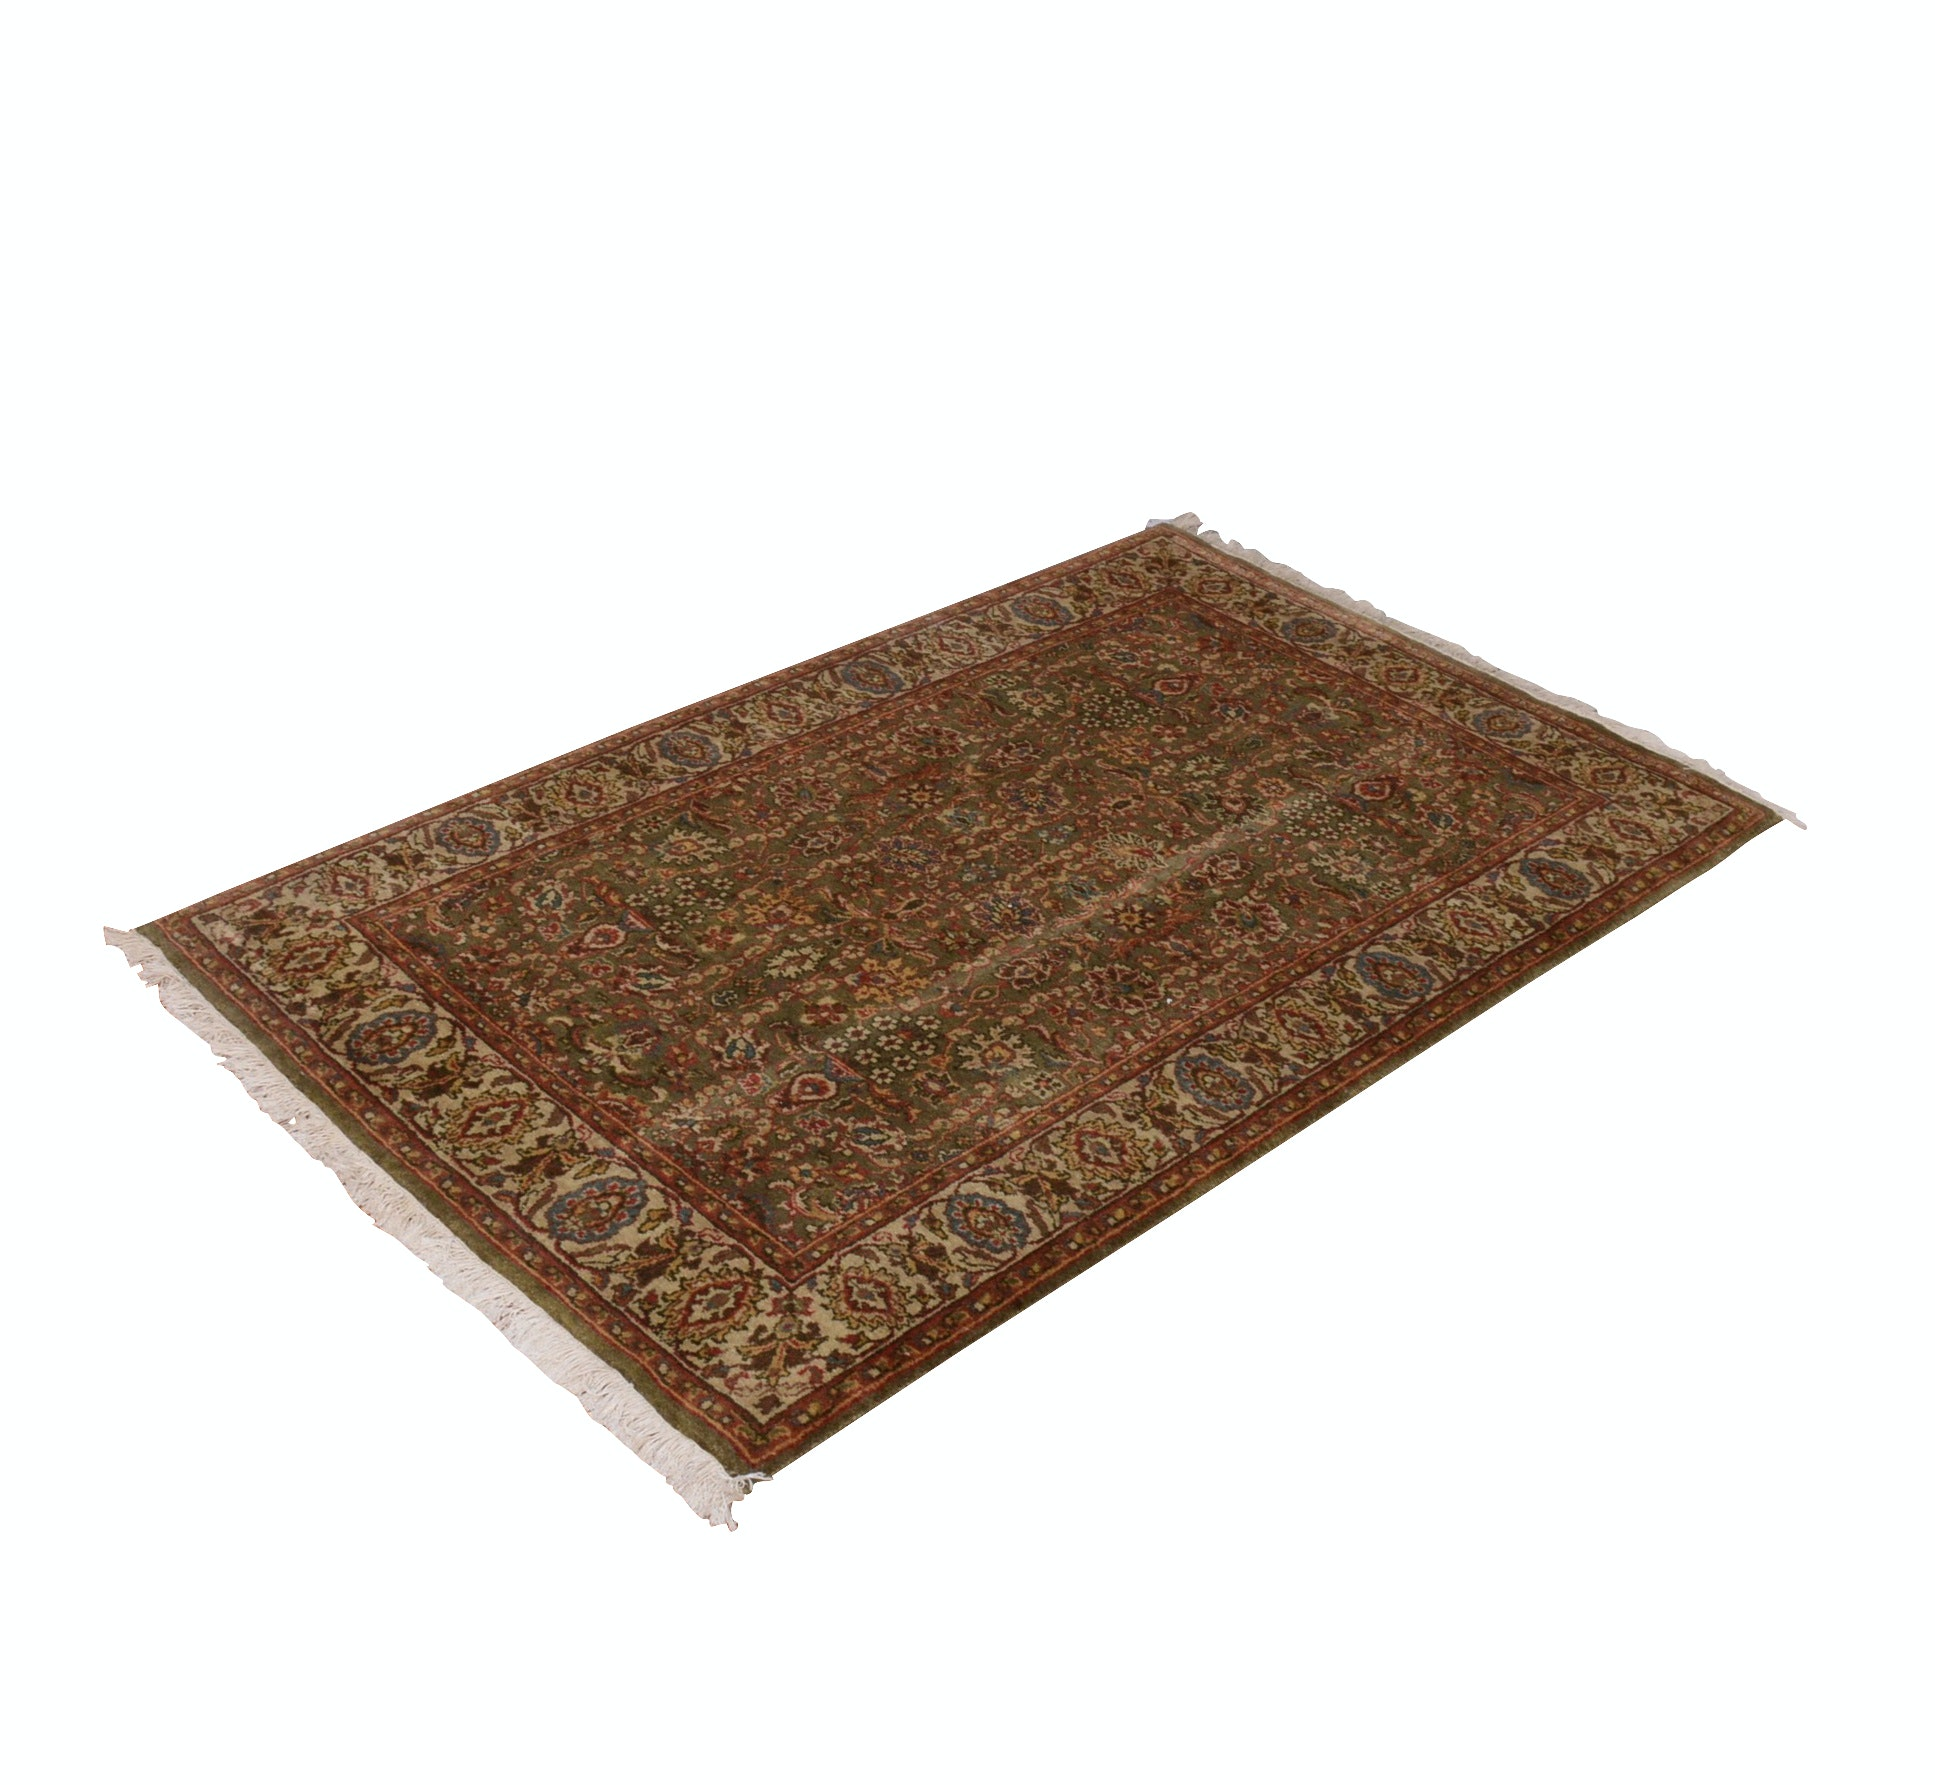 "H.A.G. Indian Hand-Knotted ""Tabriz"" Wool Rug"